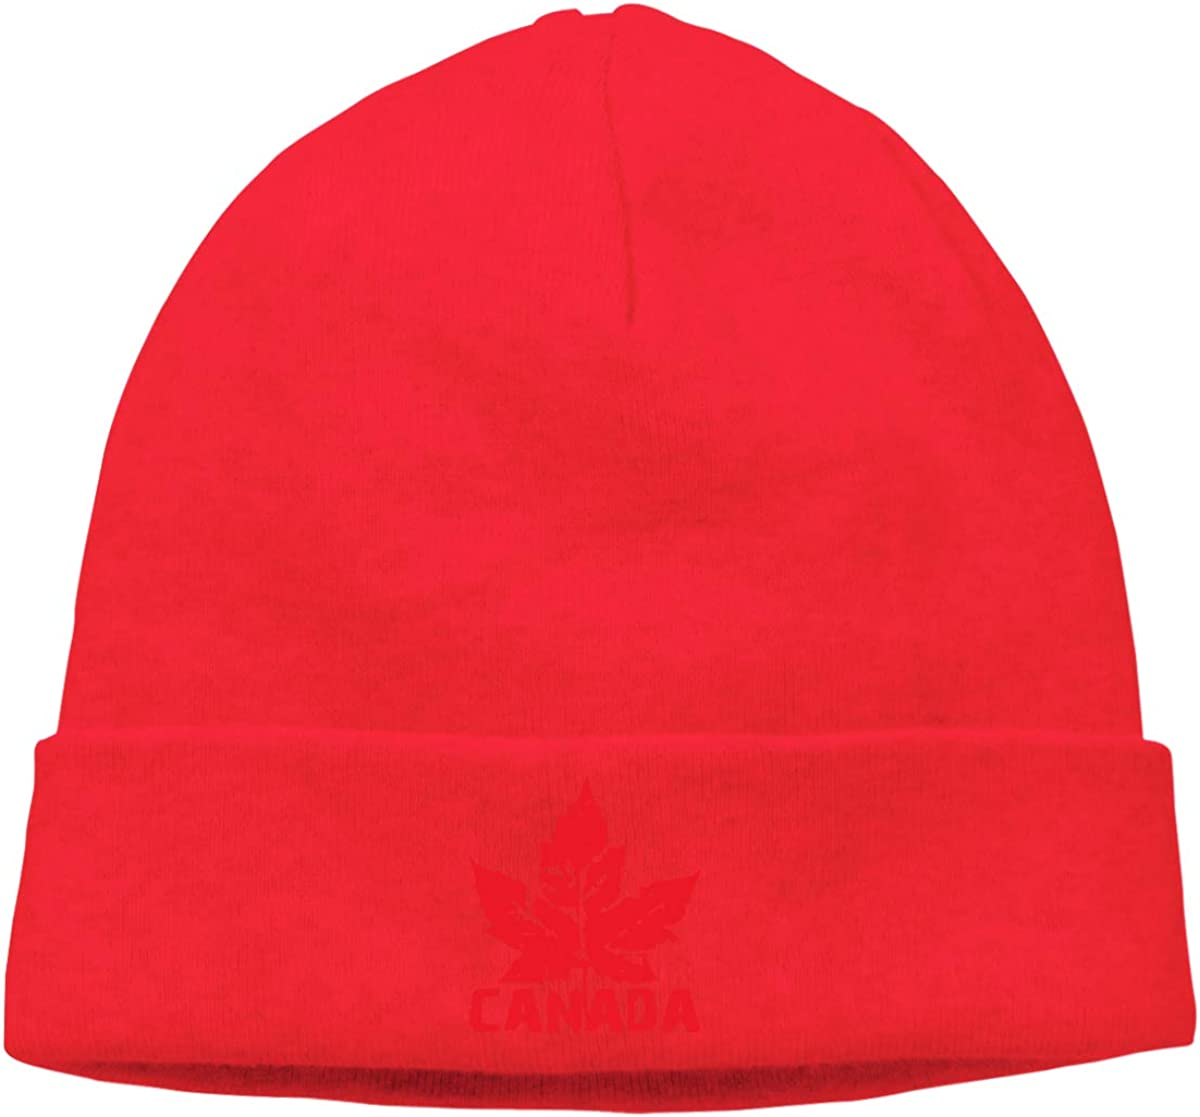 Canada Maple Leaf Beanie Hat Warm Hats Skull Cap Knitted Hat